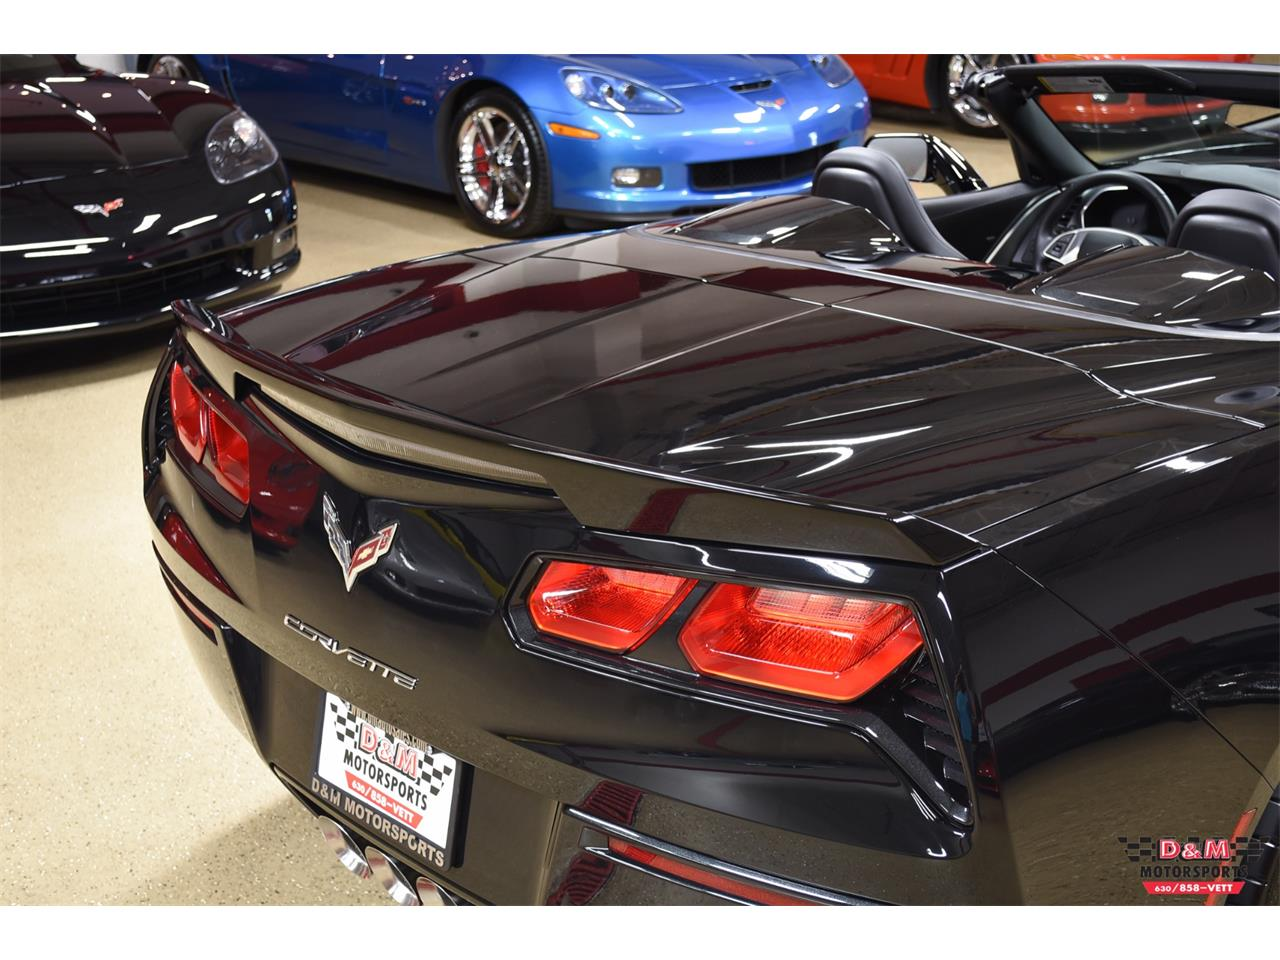 Large Picture of '15 Chevrolet Corvette located in Glen Ellyn Illinois Offered by D & M Motorsports - PZ21